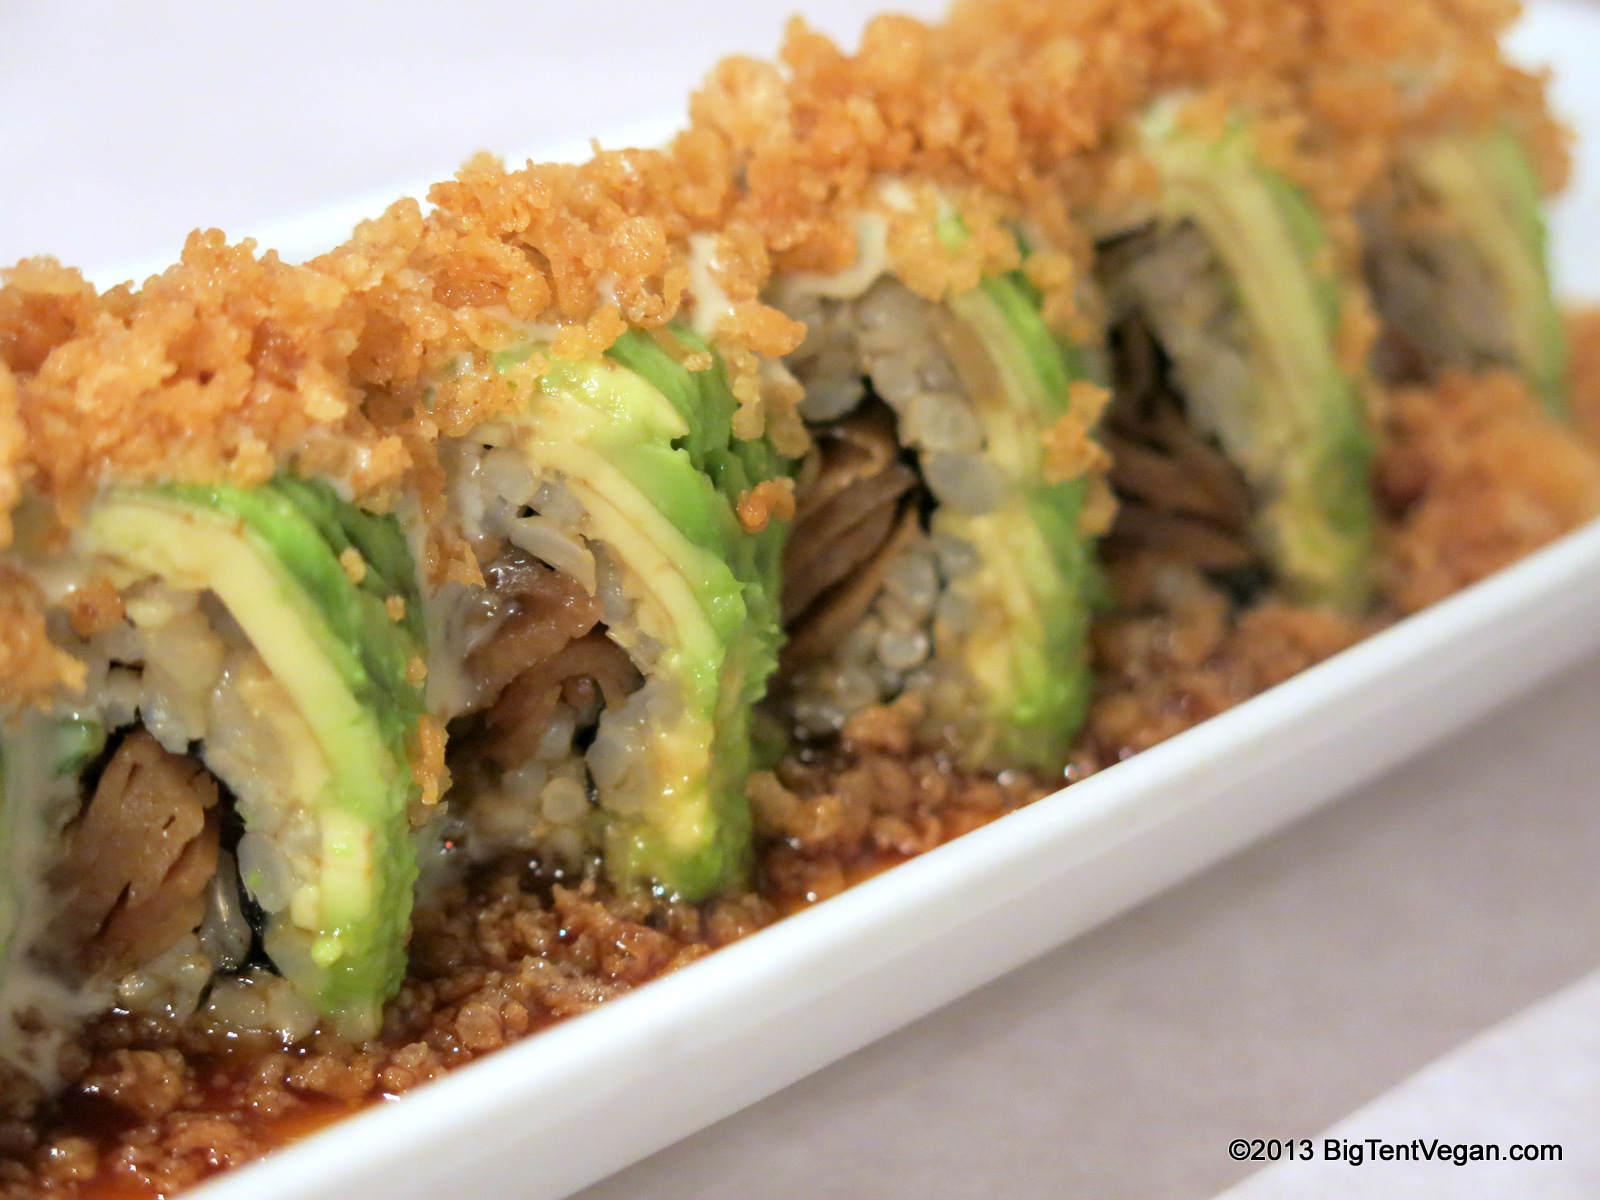 Crunchy Tiger, Hidden Dragon: BBQ Seitan, Tempura Asparagus, & Avocado Roll topped with Crunchy Tempura Batter, drizzled with Wasabi Mayo and Sweet Soy Sauce.